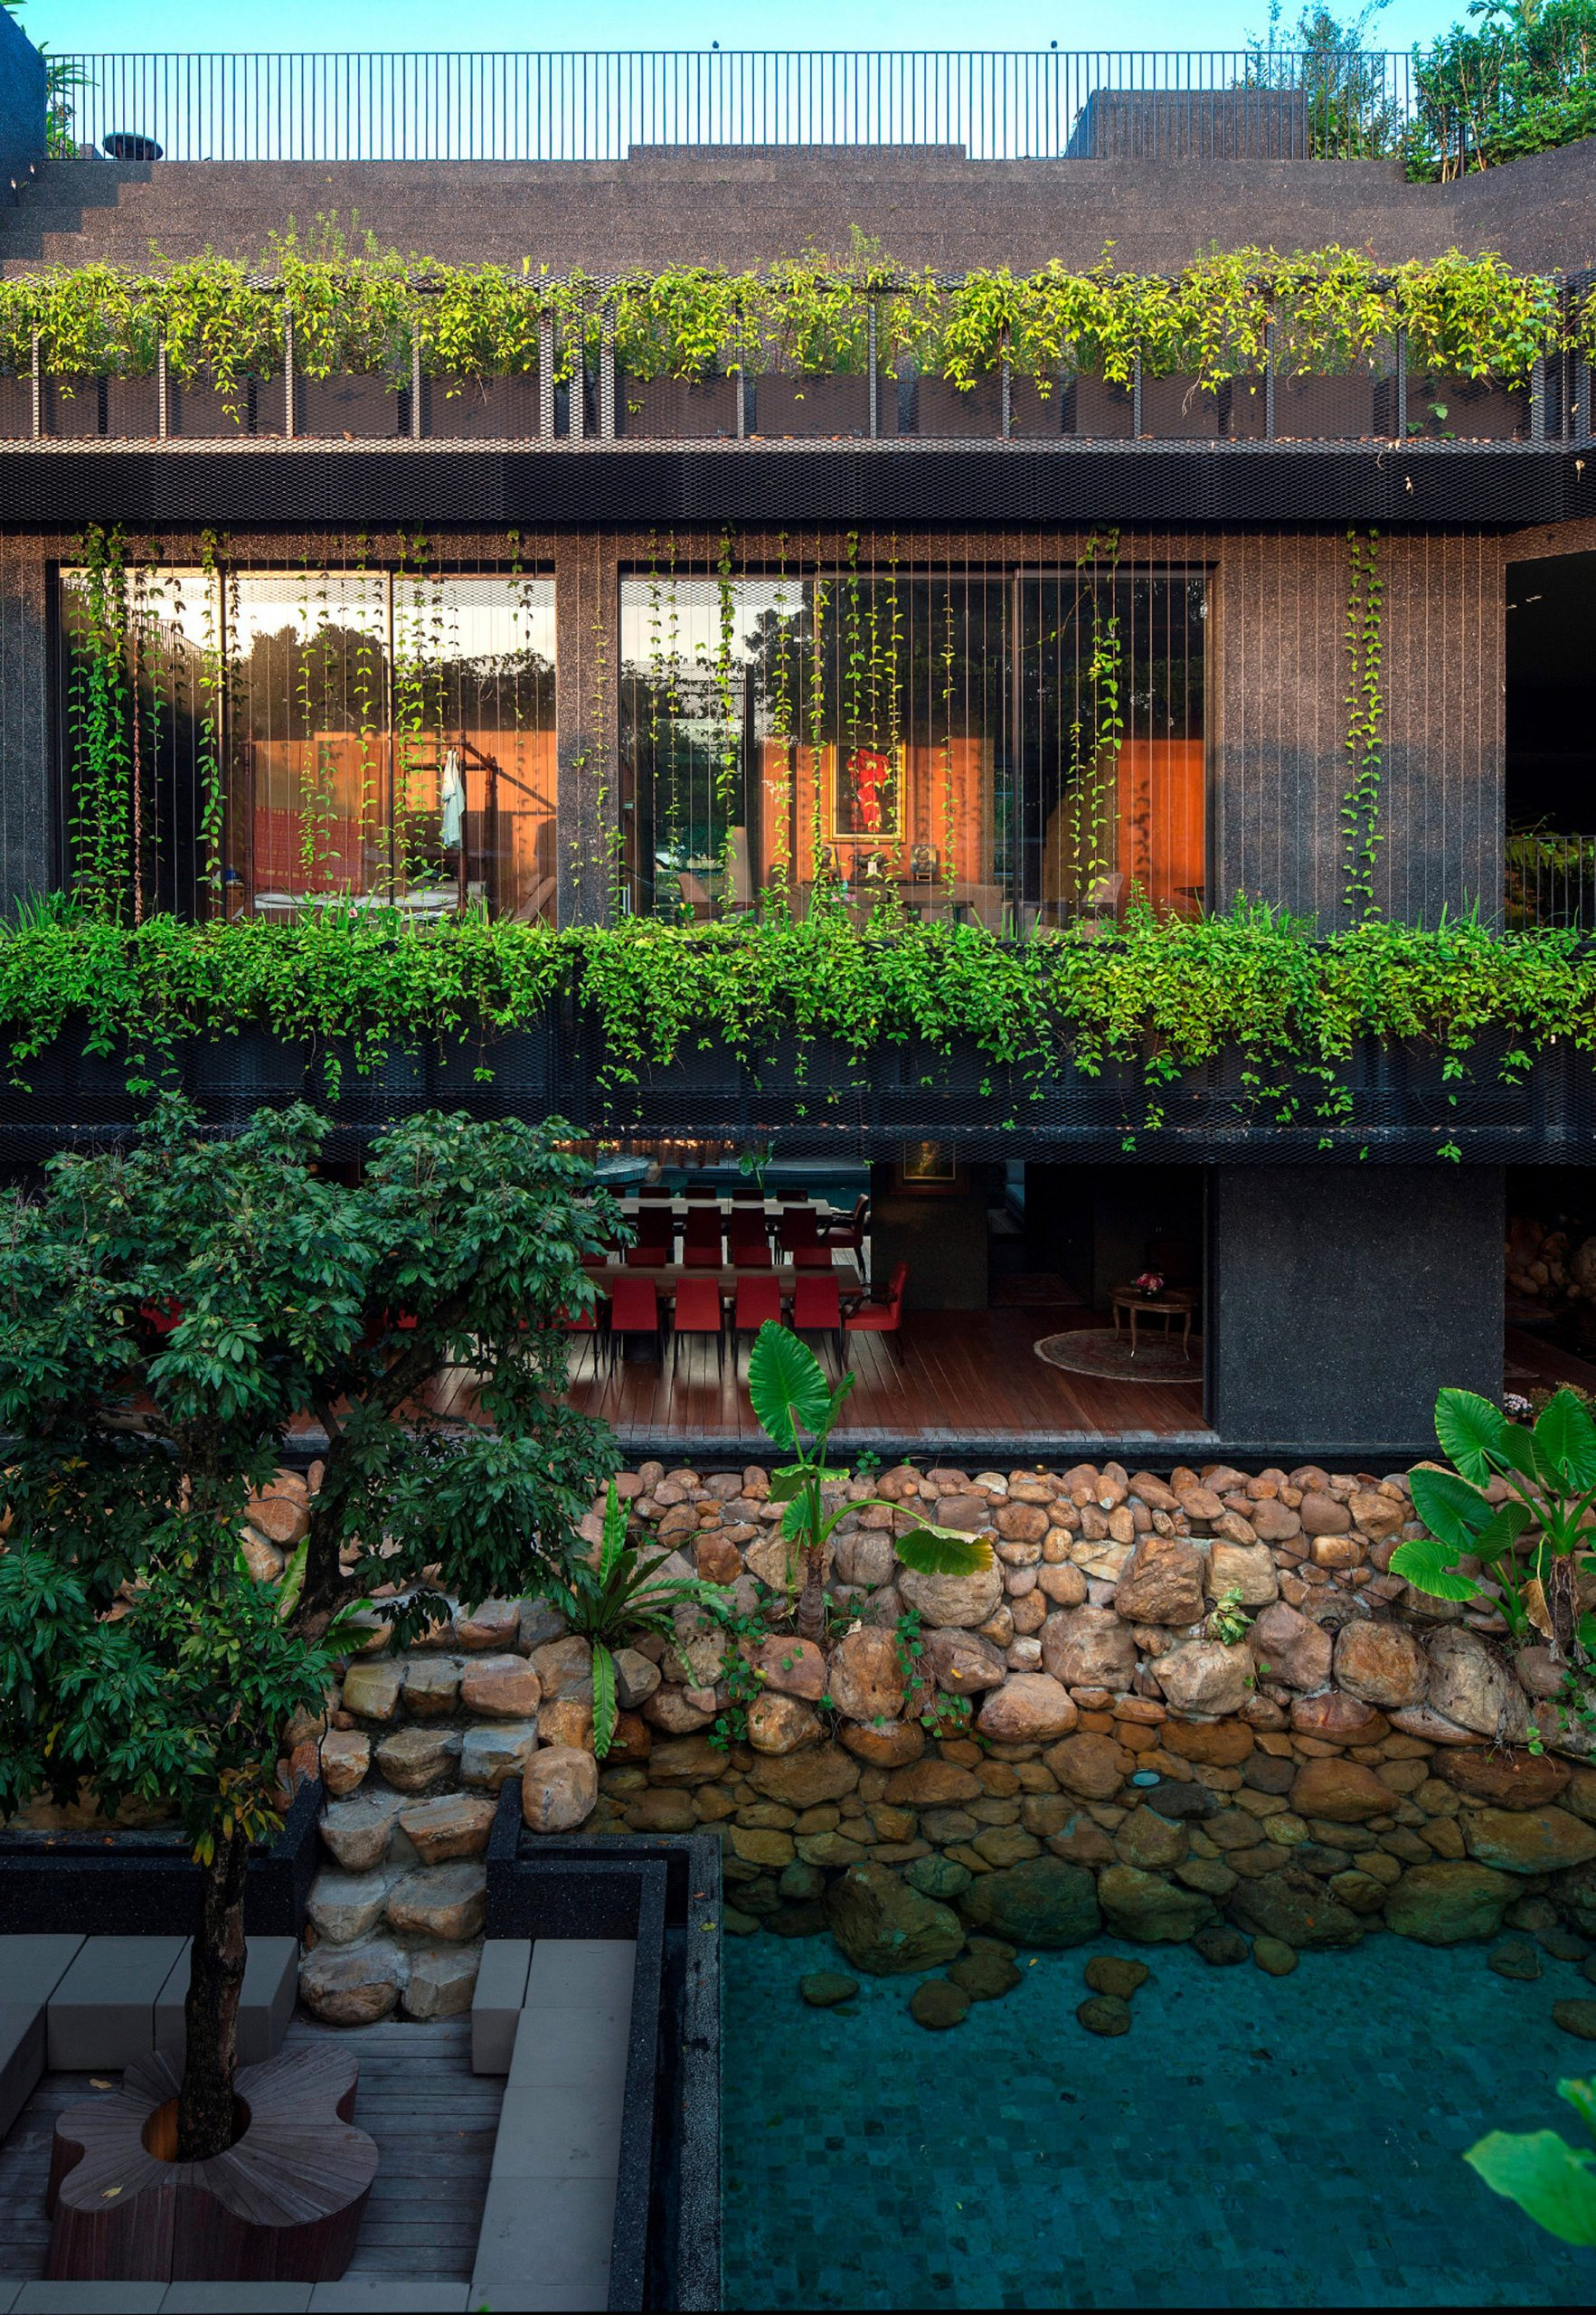 Courtyard living: Contemporary houses of the Asia-Pacific by Charmaine Chan